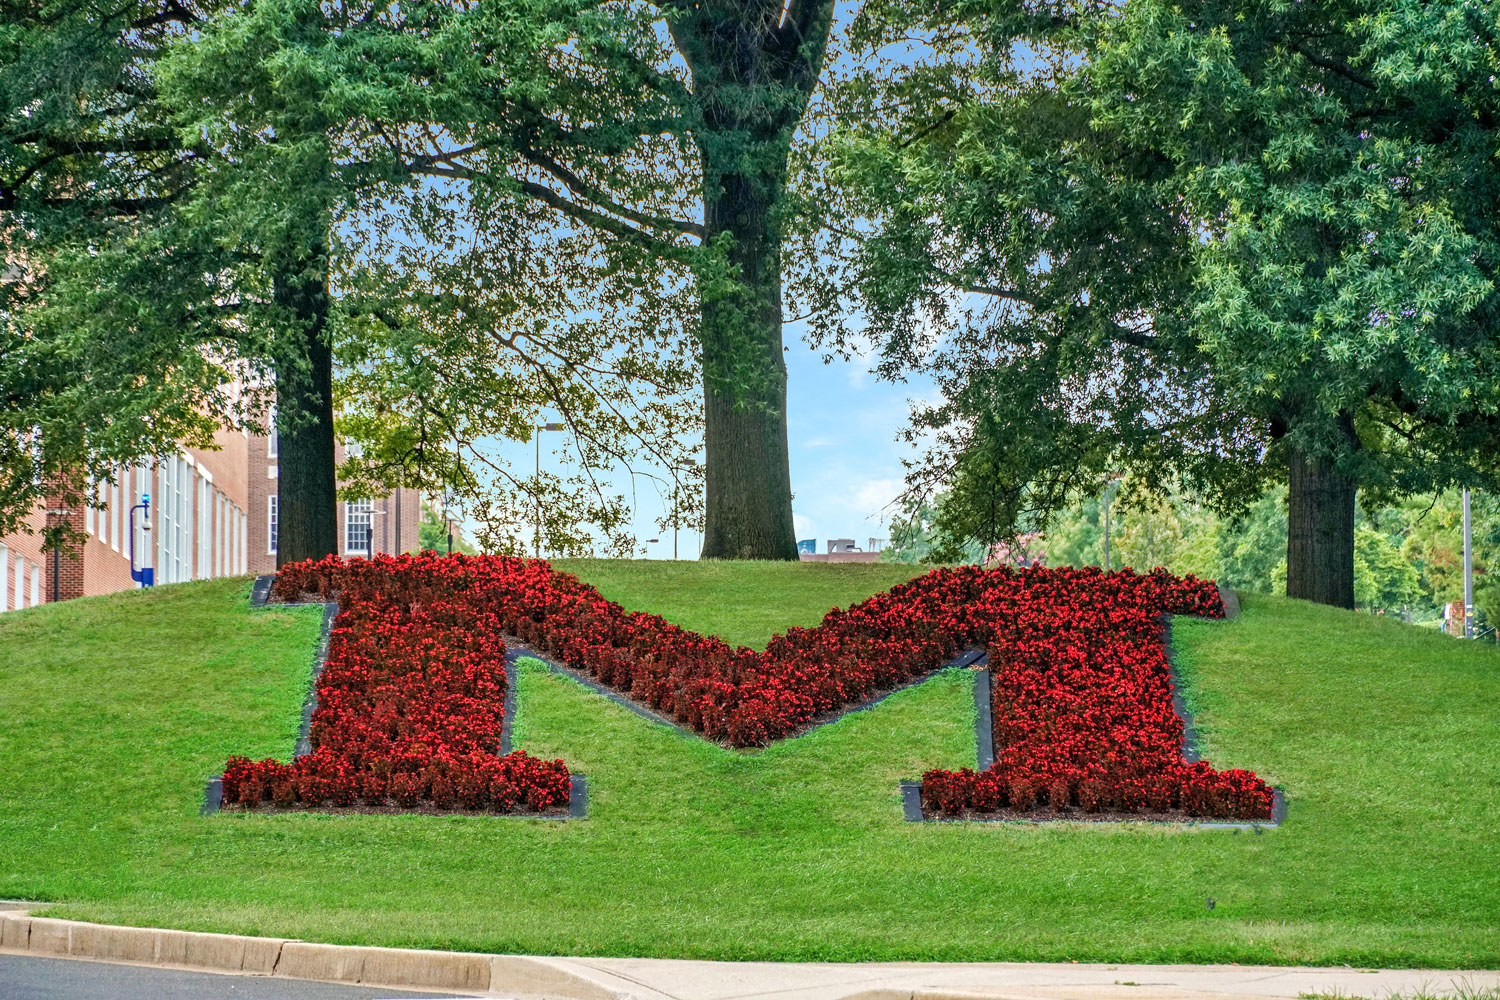 10 minutes to University of Maryland, College Park